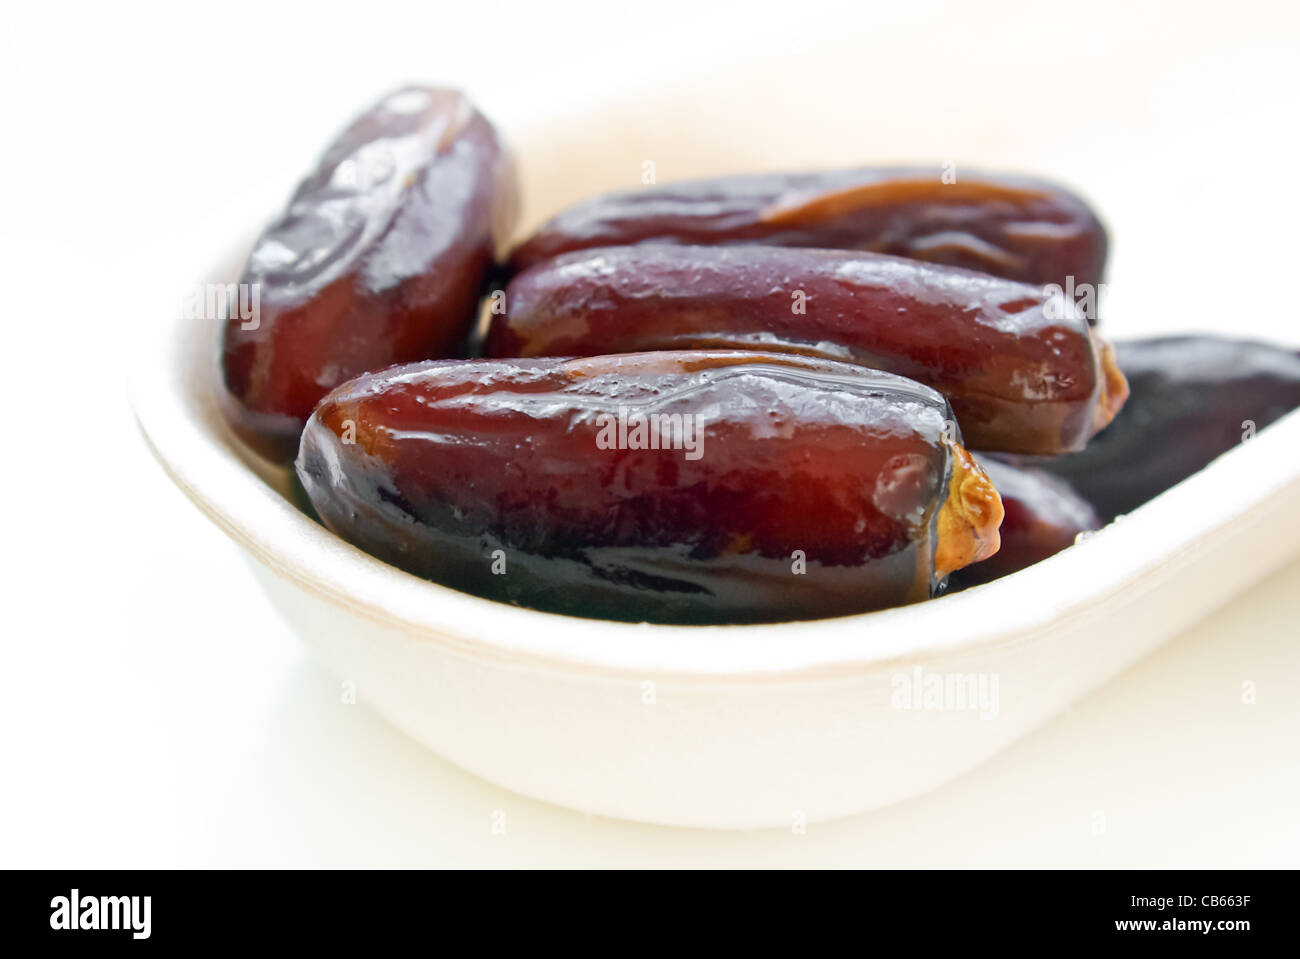 Macro of date fruits in a plate on white background - Stock Image